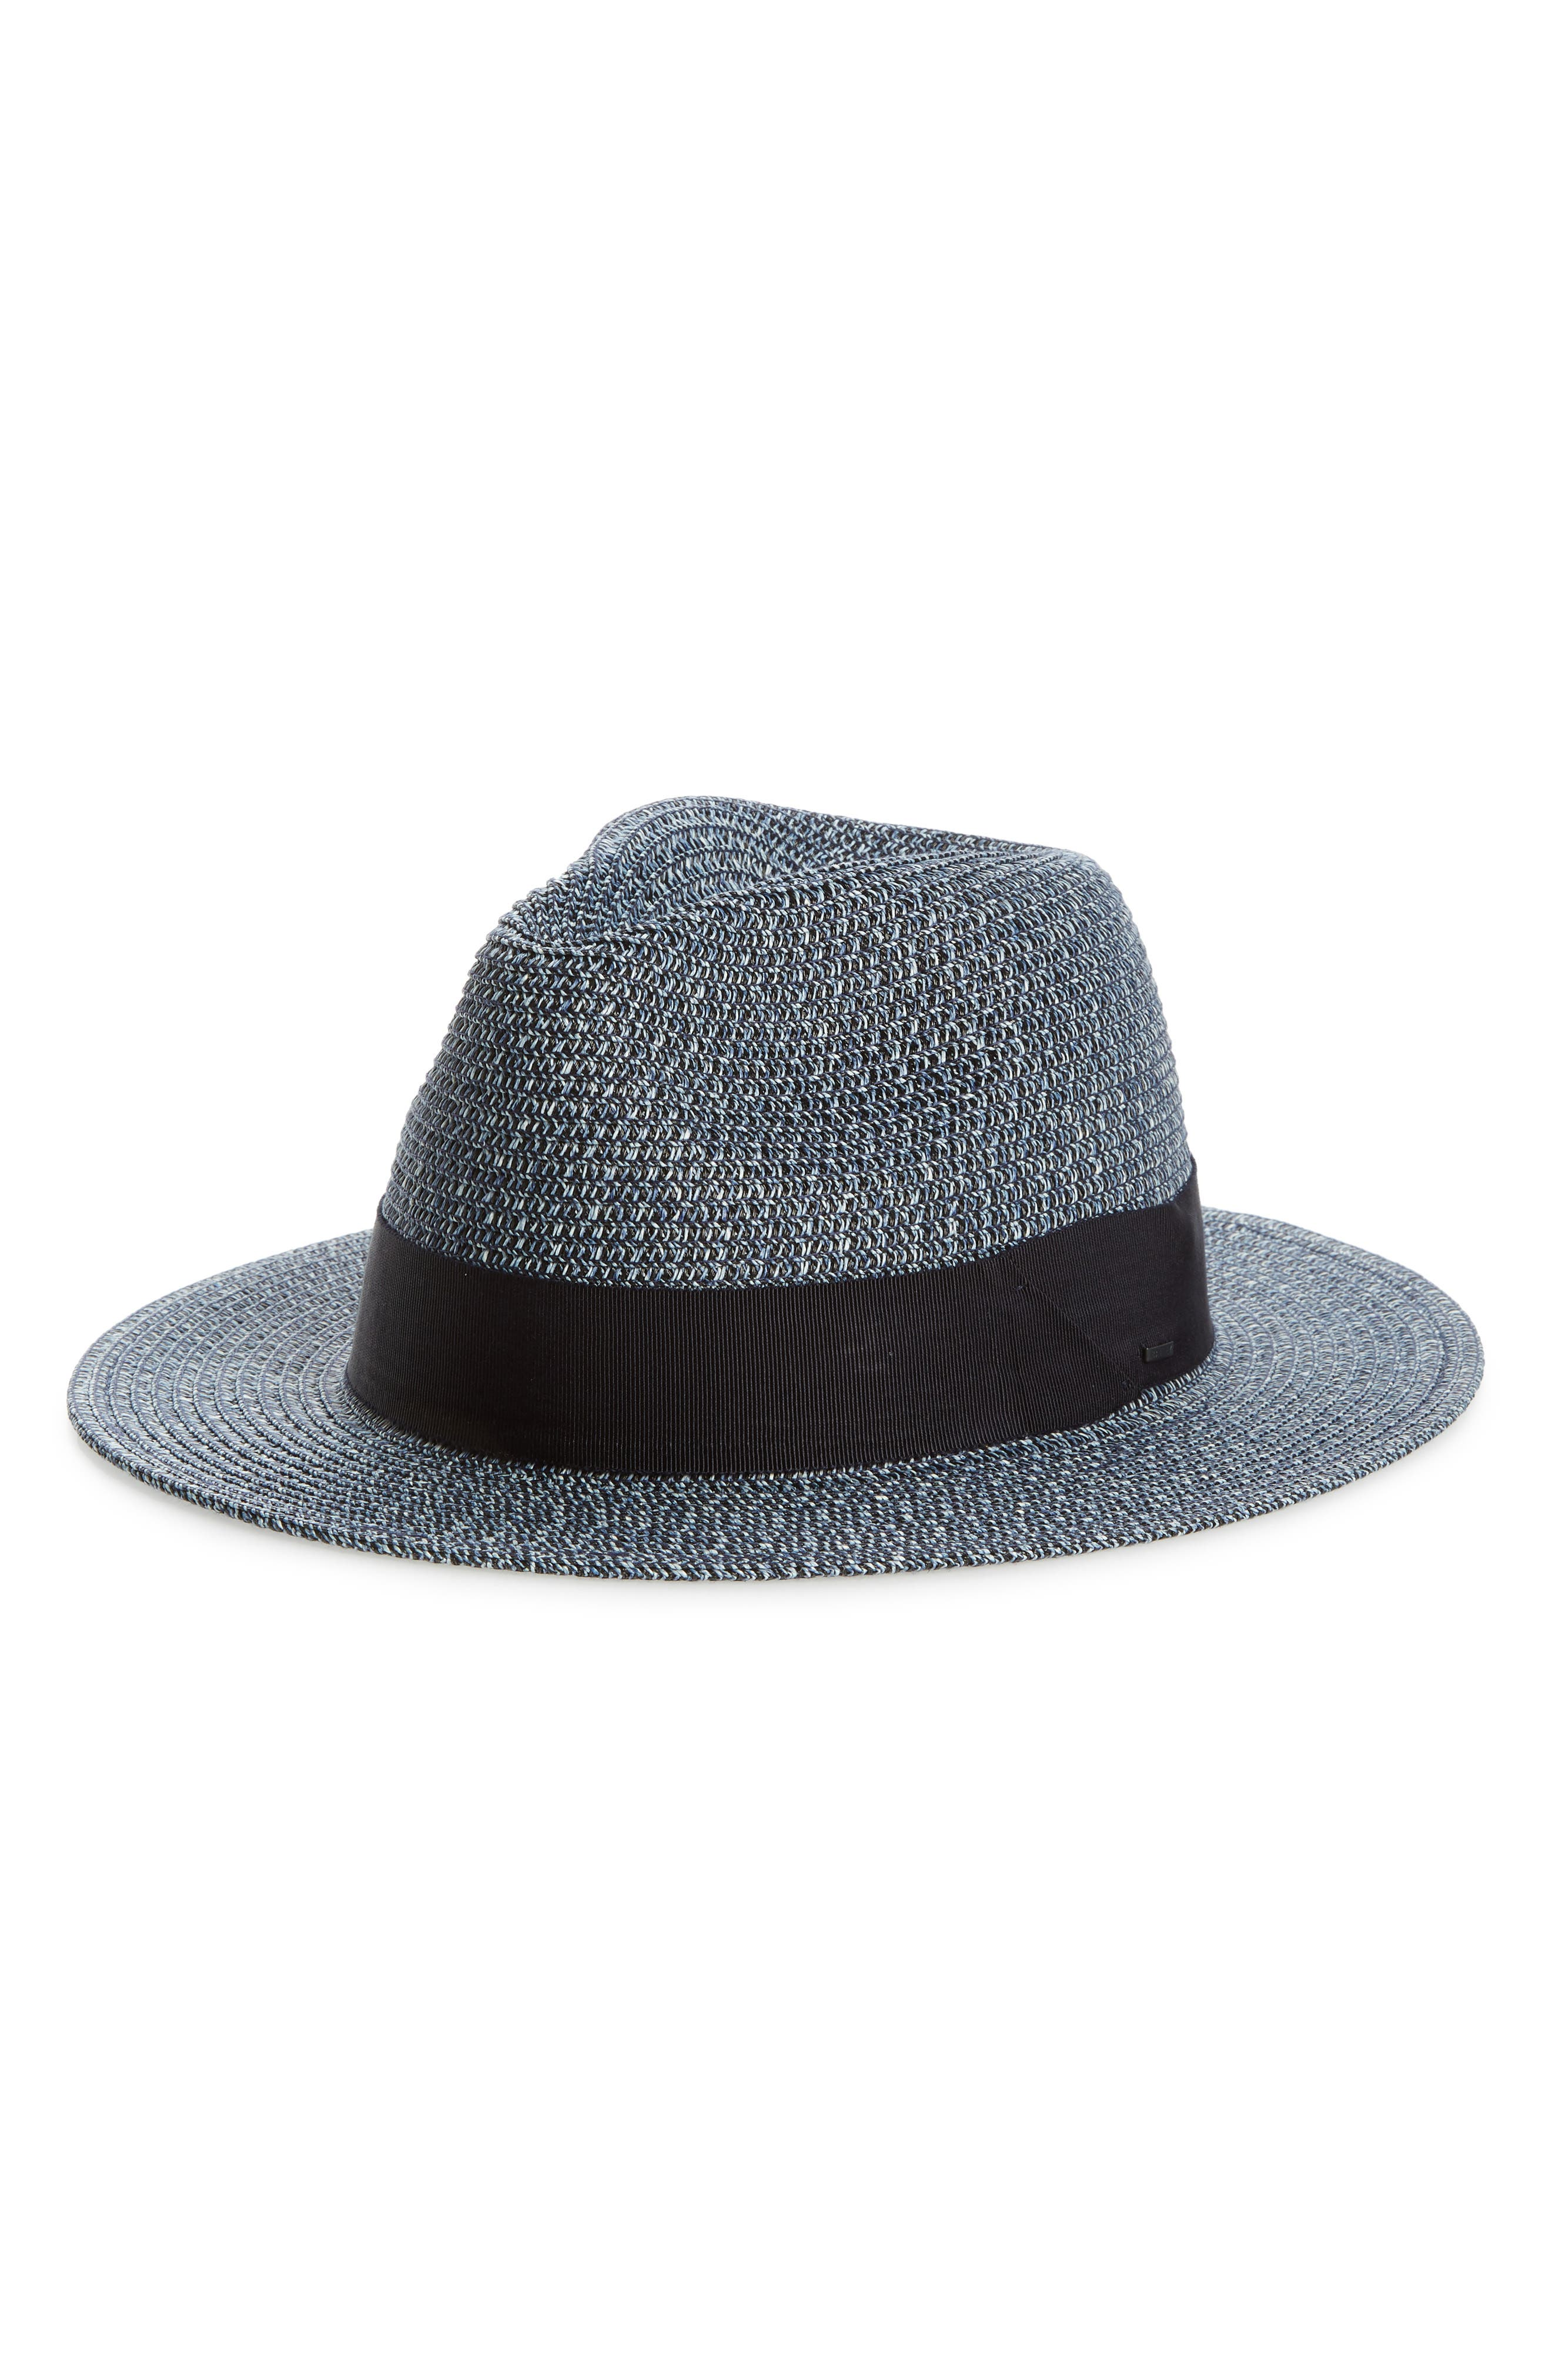 Bailey Mullan Straw Fedora - Blue